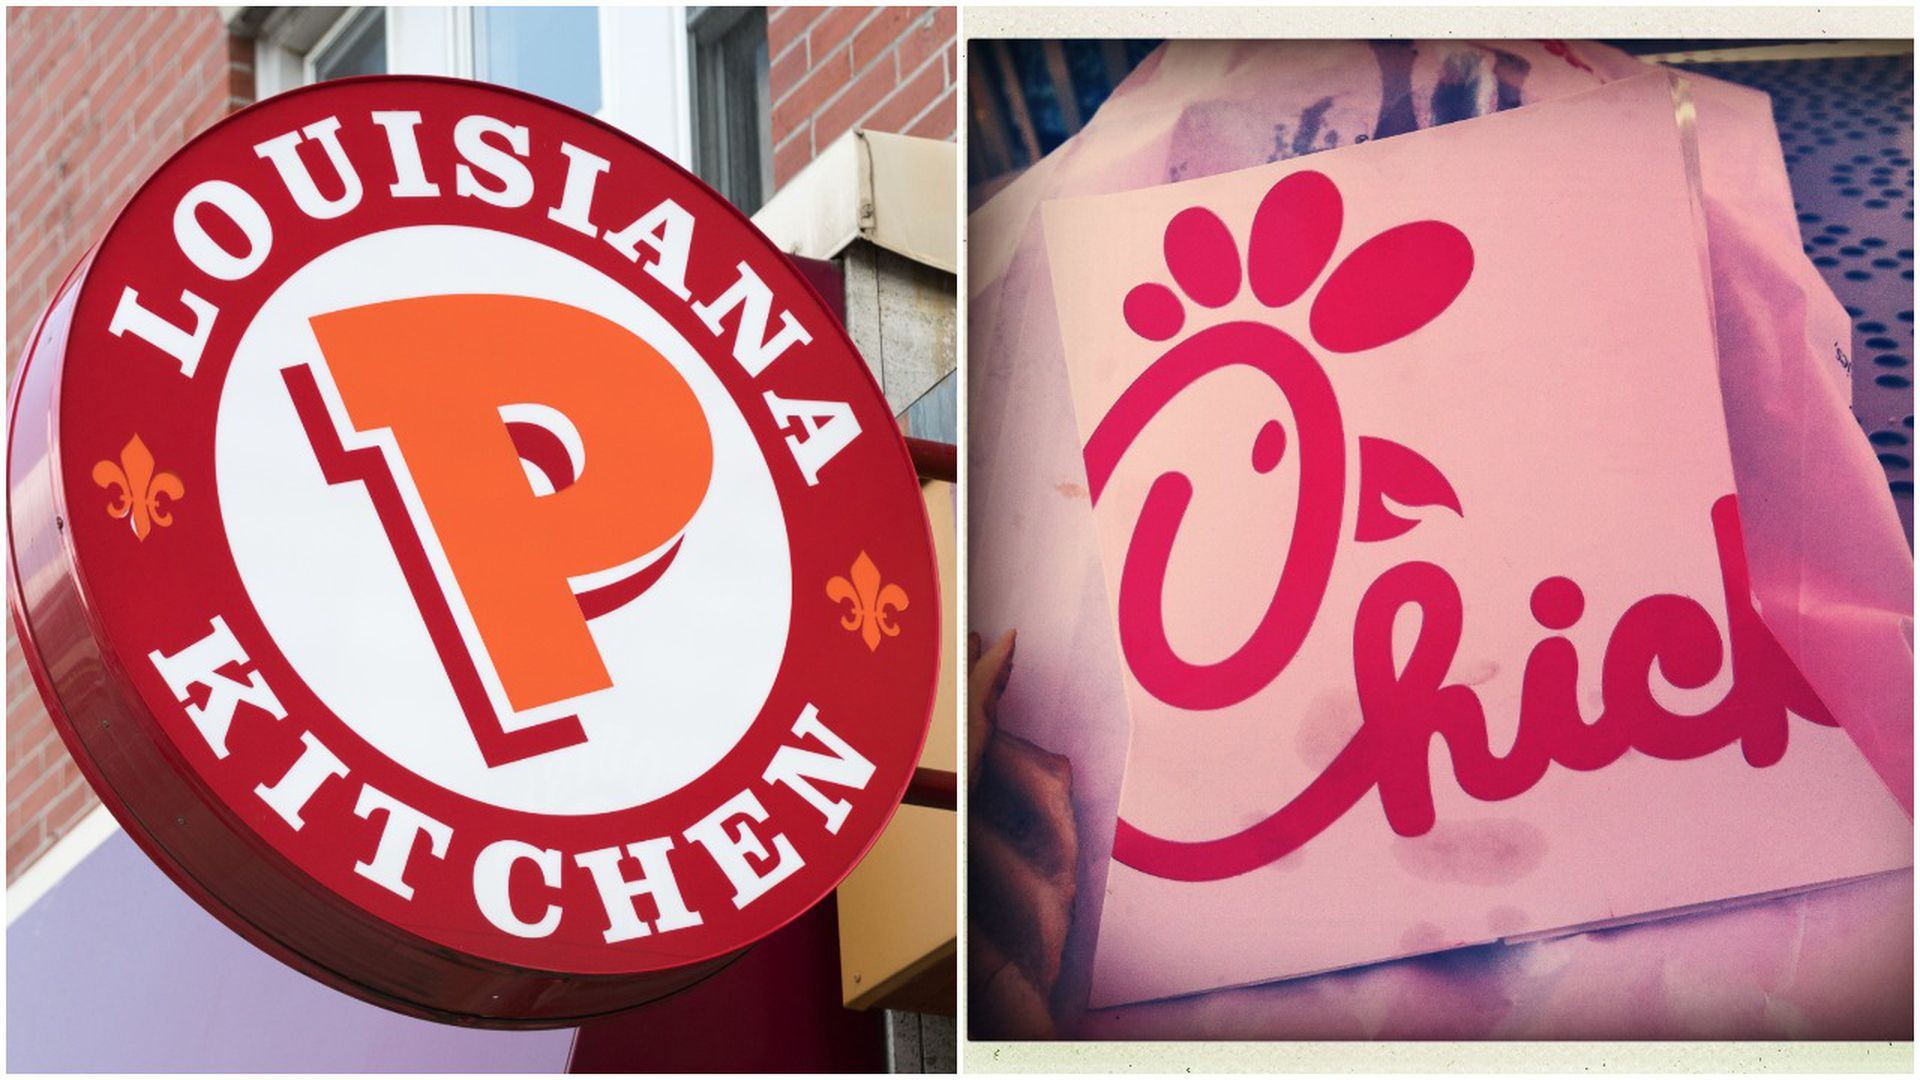 pic stitch of popeyes chicken sign and chick-fil-a sandwich